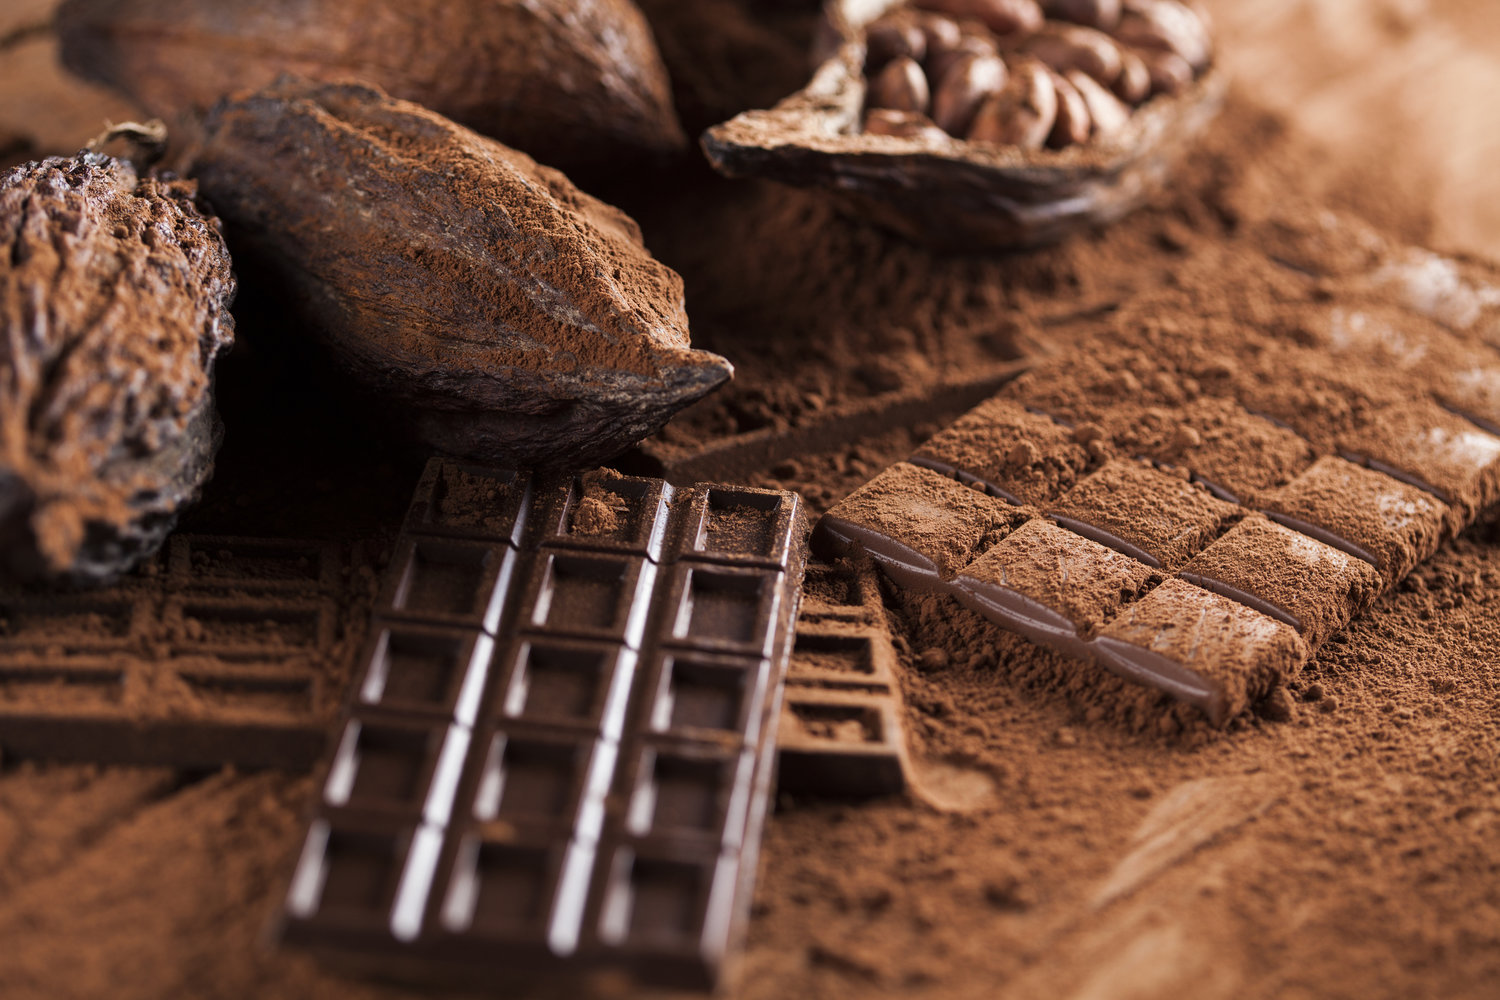 8 Unexpected uses of chocolate